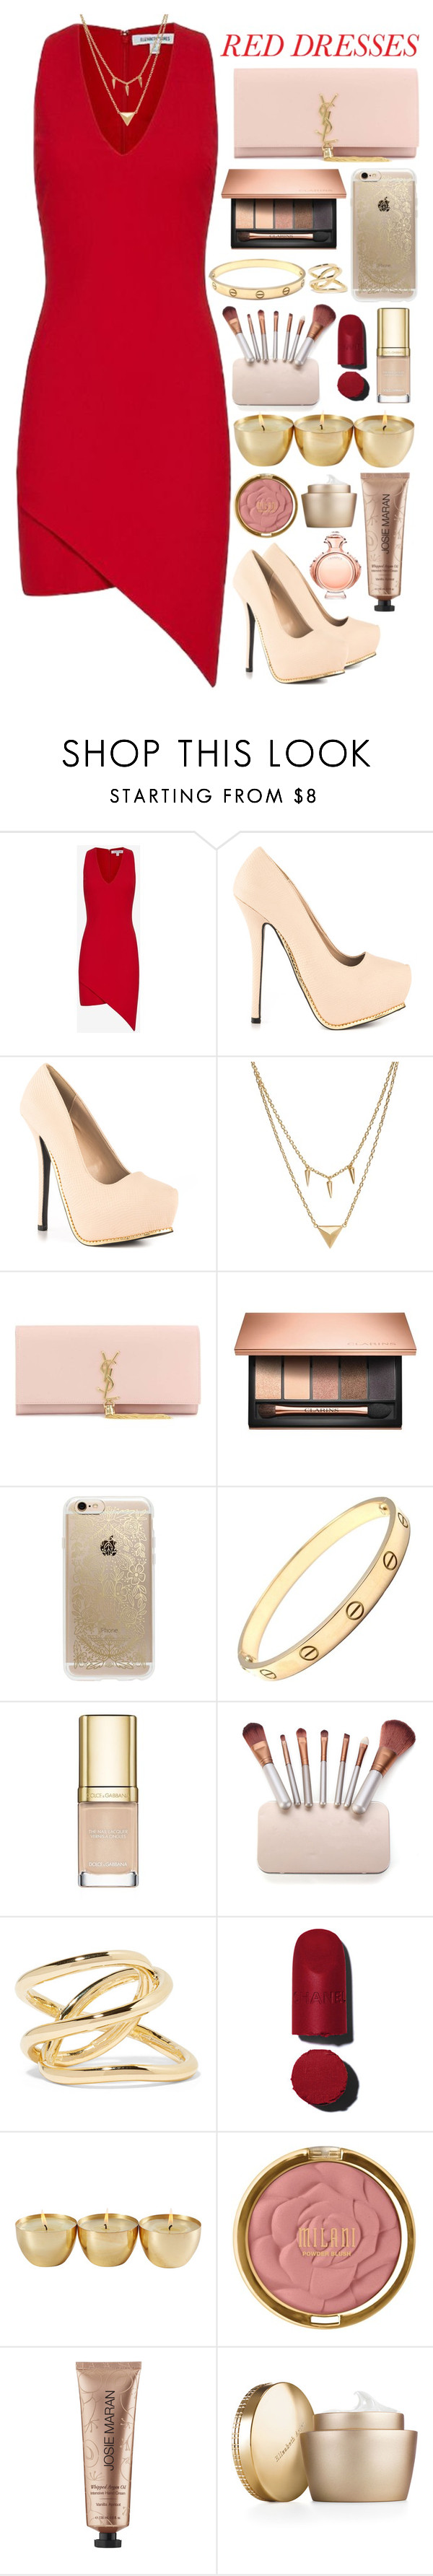 """""""red dress"""" by thelipglossgirl ❤ liked on Polyvore featuring Elizabeth and James, Qupid, Edge of Ember, Yves Saint Laurent, Clarins, Rifle Paper Co, Cartier, Dolce&Gabbana, Jennifer Fisher and Chanel"""